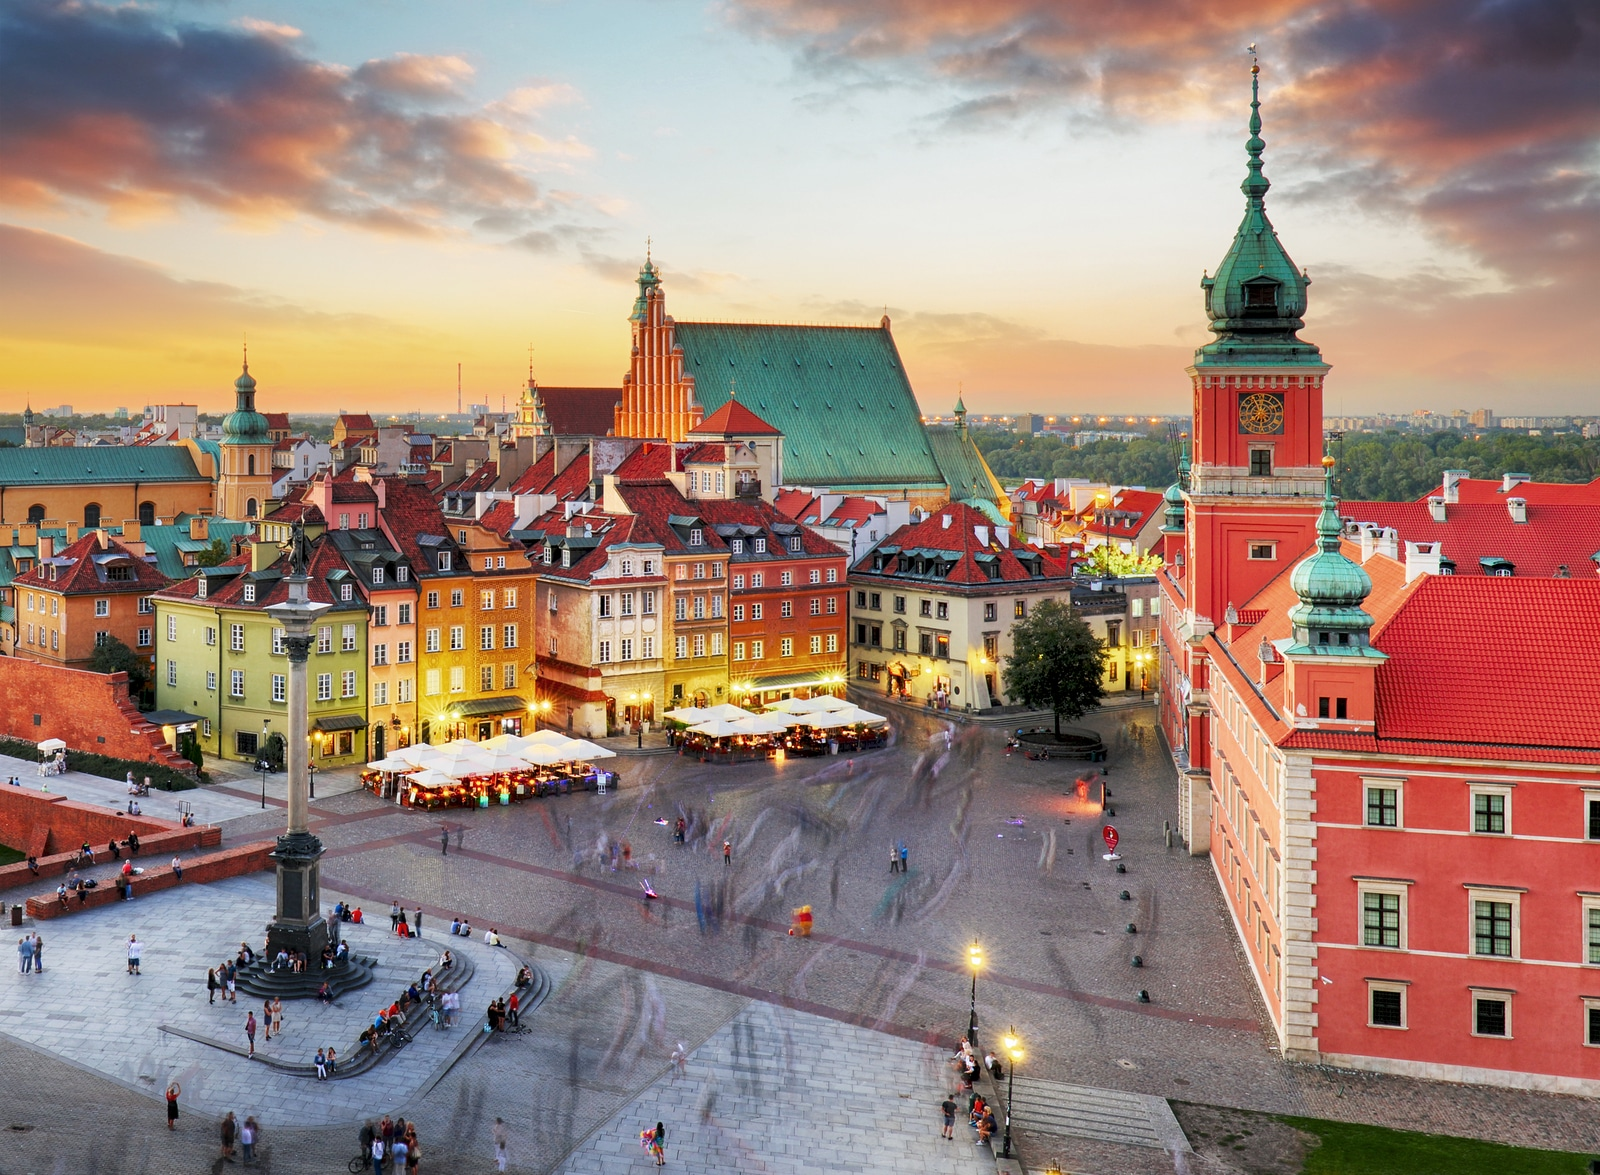 3 Reasons to Love Poland